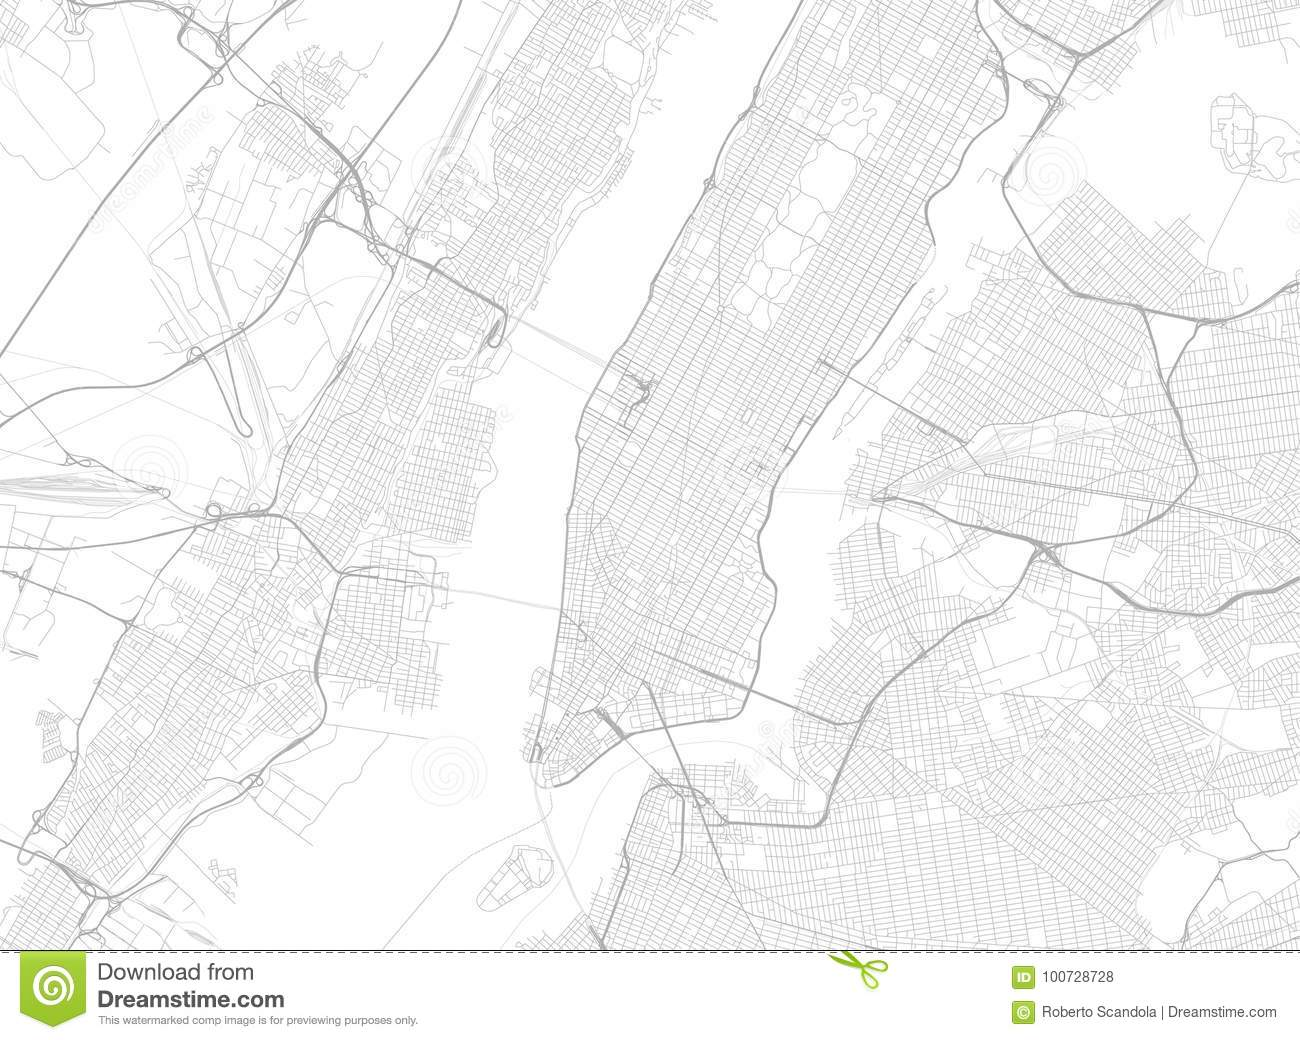 Vector Black Map Of New York Stock Vector Illustration of place